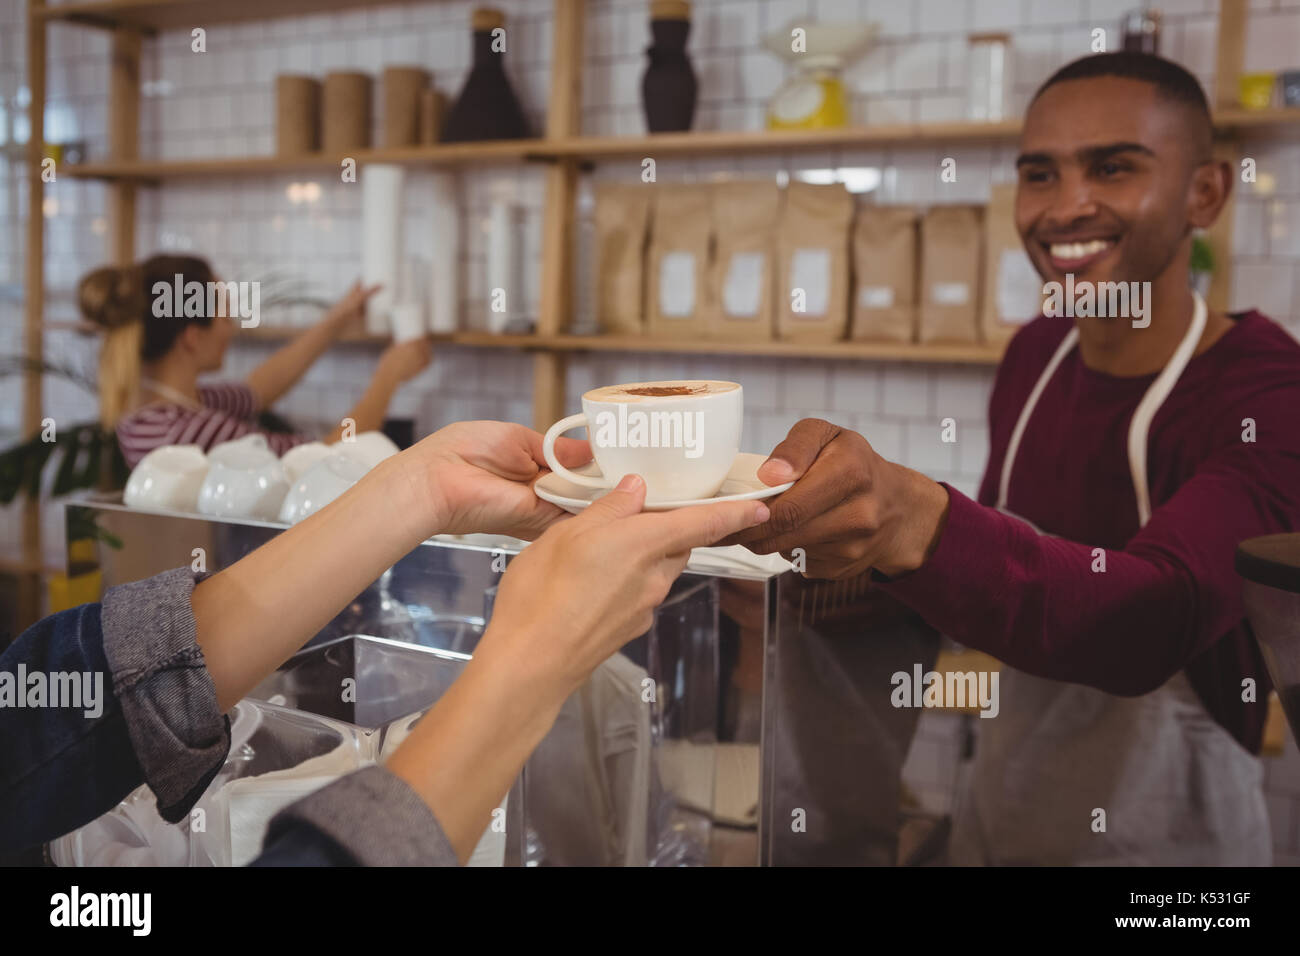 Cropped hands of customer receiving coffee from male owner at cafe - Stock Image